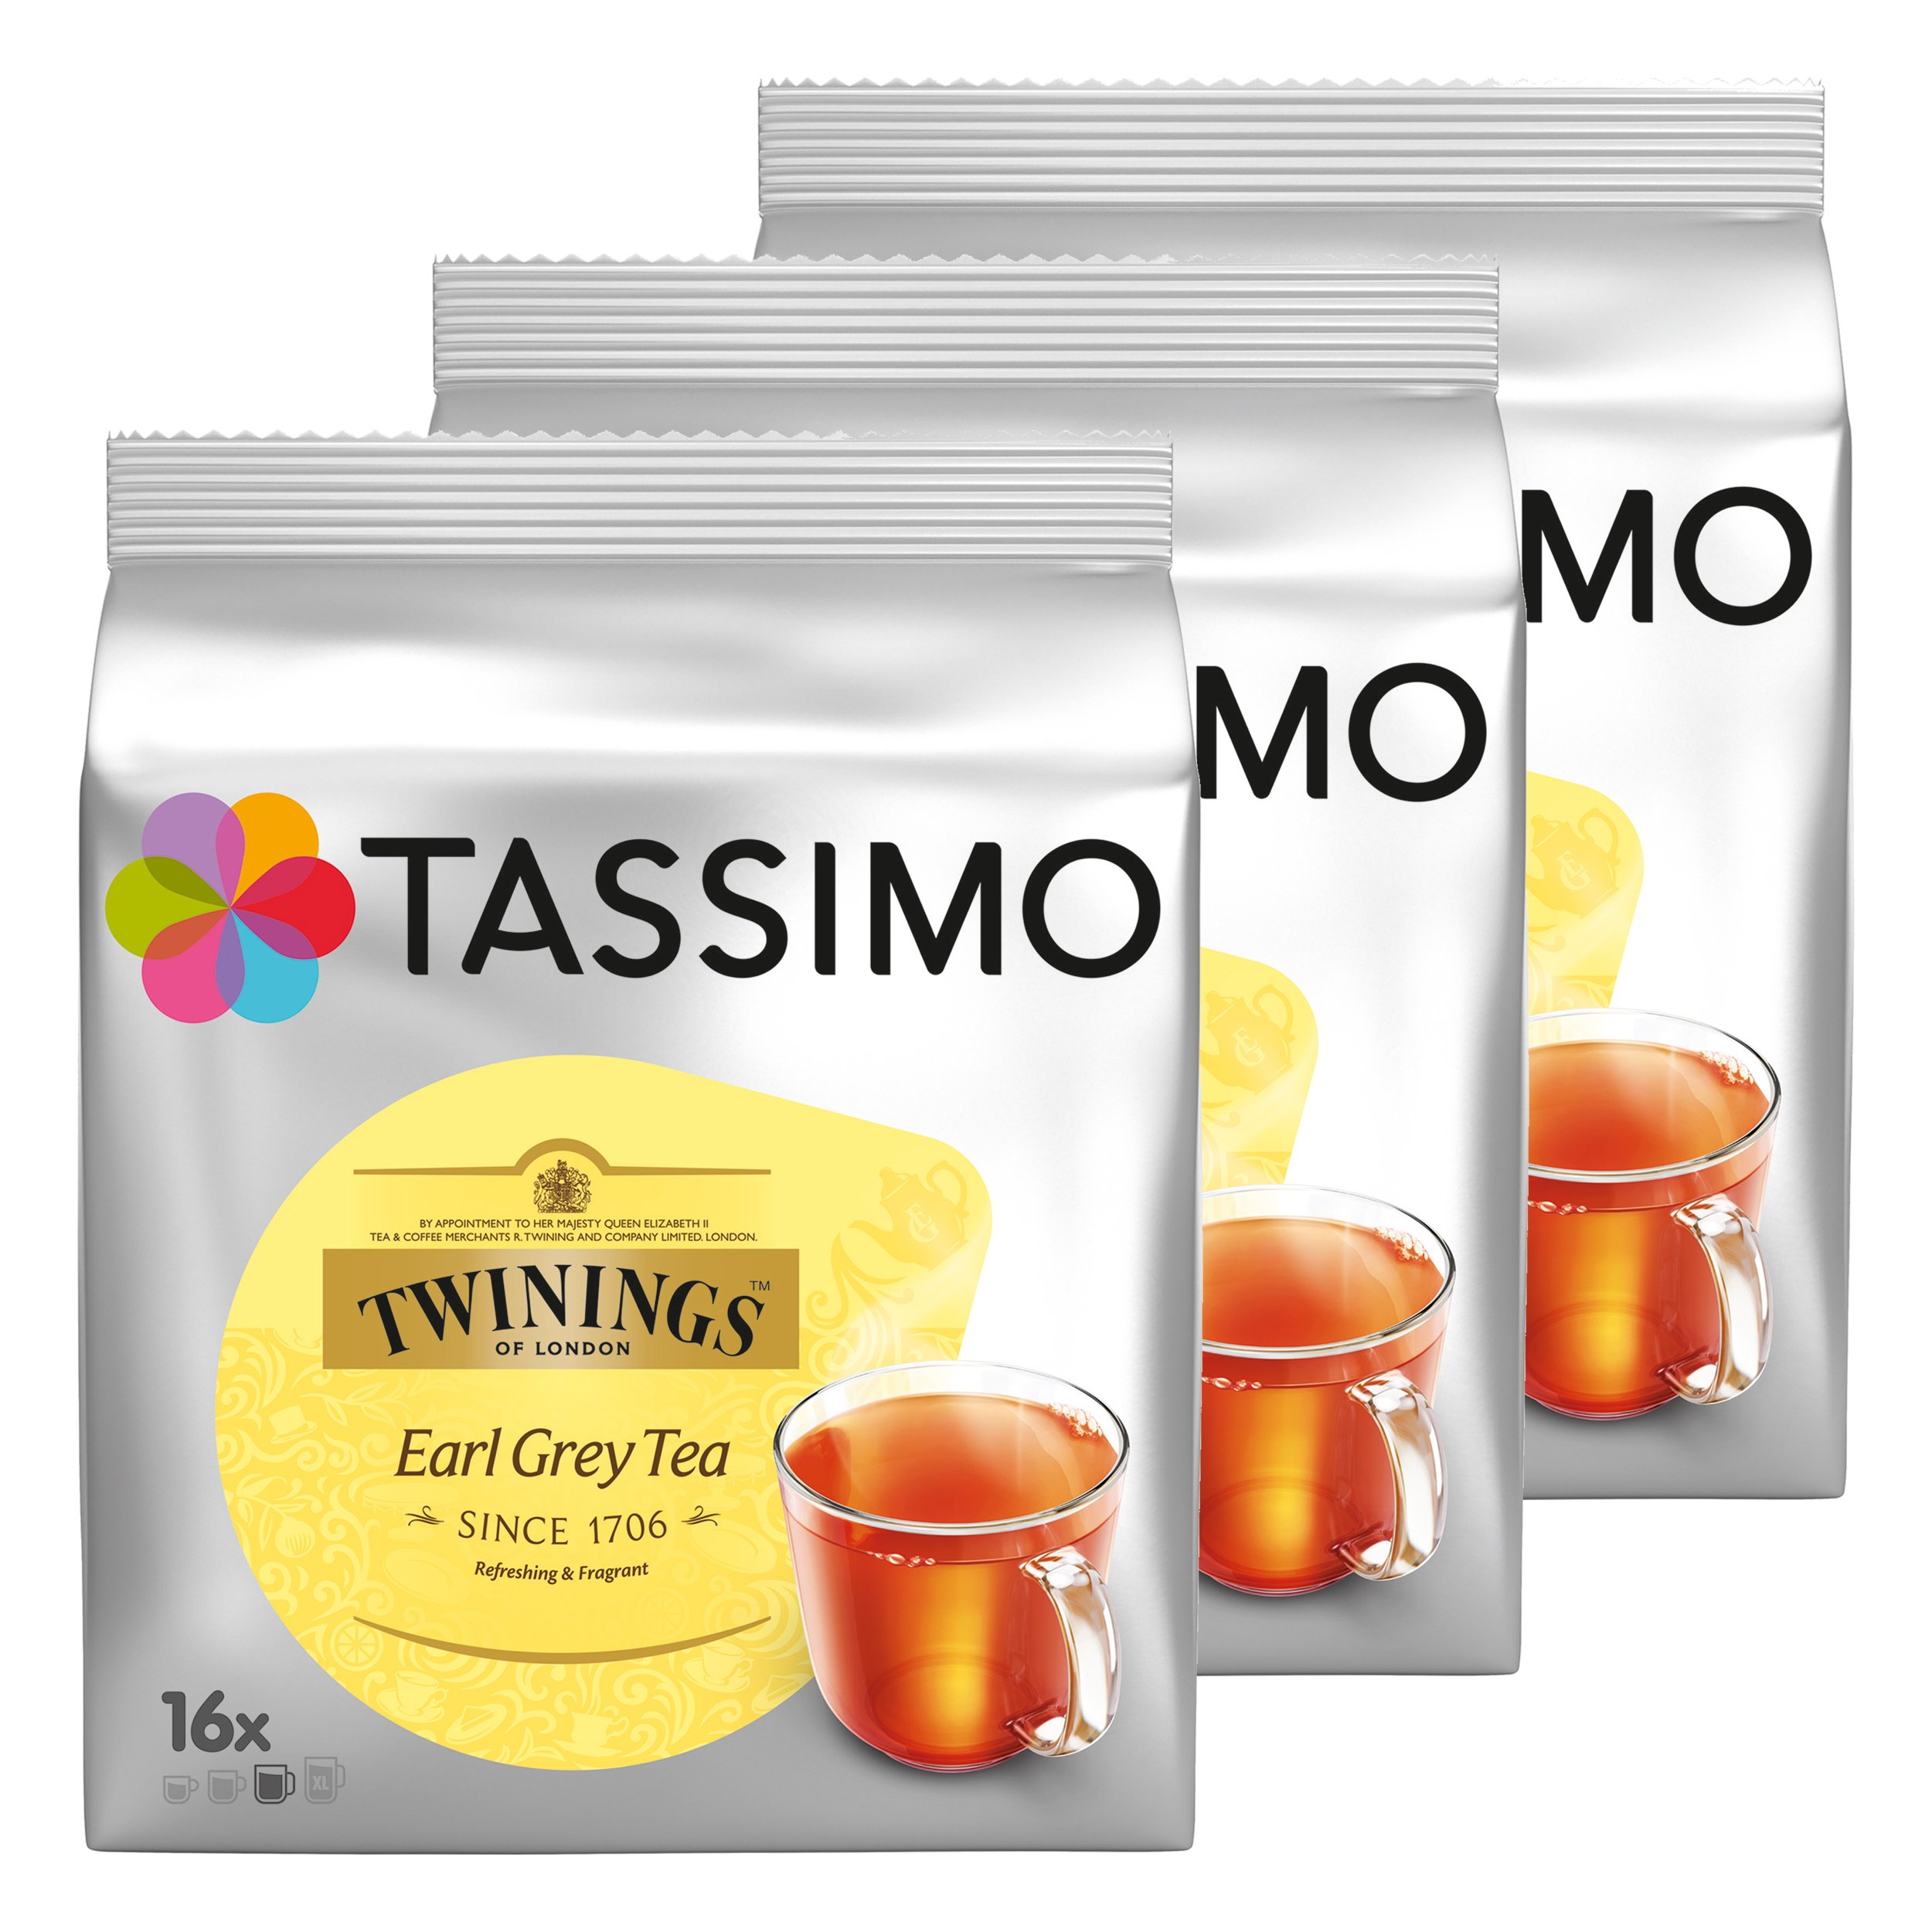 Tassimo Twinings Earl Grey Tea, Pack of 3, 3 x 16 T-Discs